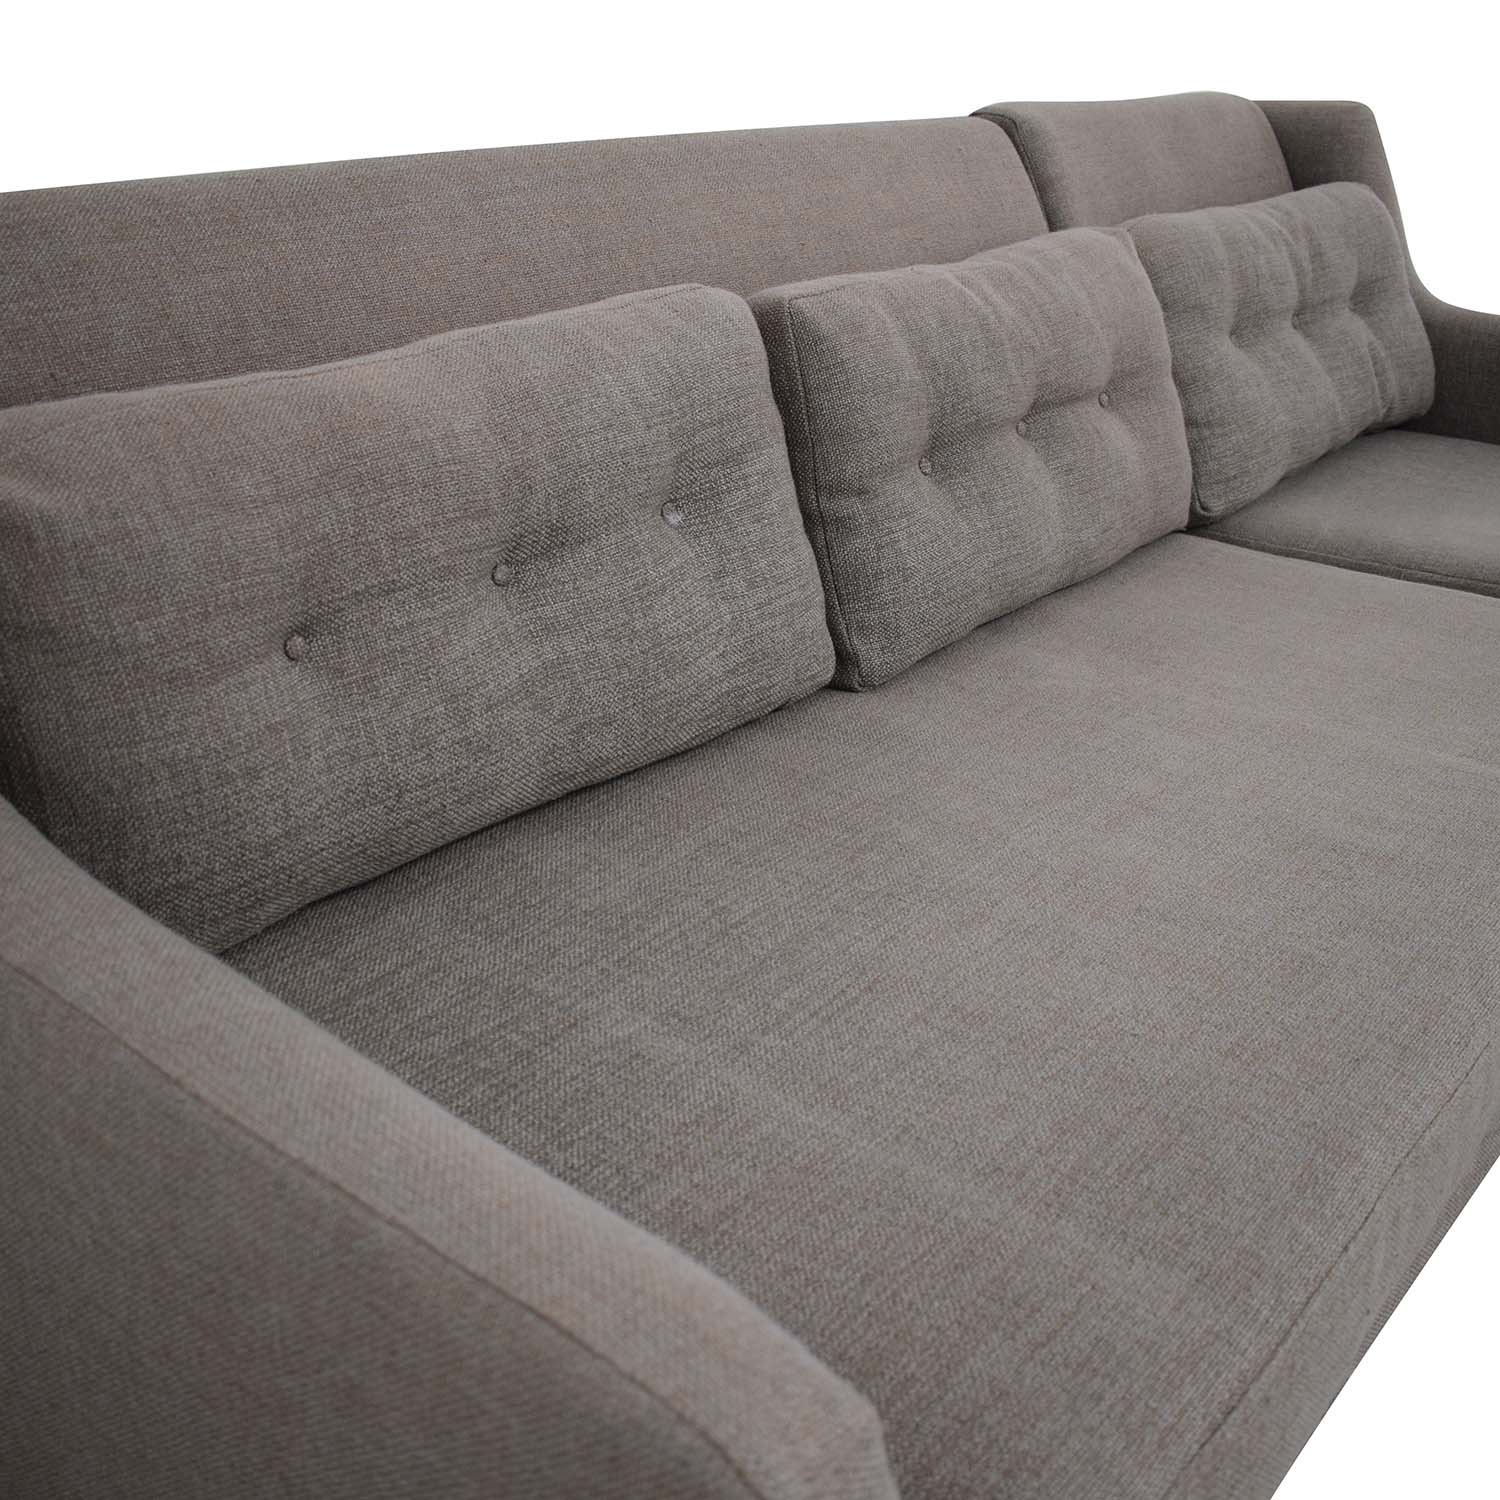 West Elm West Elm Crosby Mid-Century Sectional Sofa with Chaise second hand